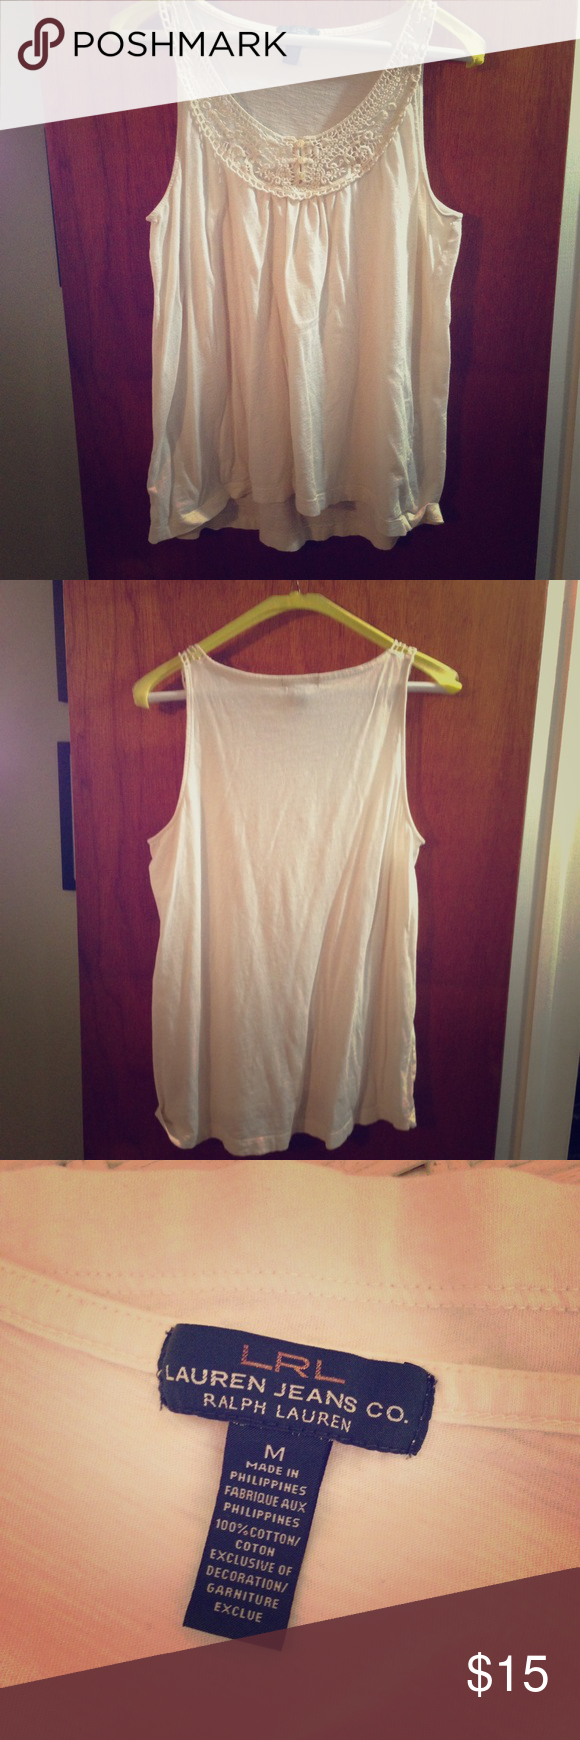 Cream tank top by Ralph Lauren All cotton cream tank top by Lauren Jeans Company by Ralph Lauren. Great with shorts by itself or under a cardigan. Lauren Ralph Lauren Tops Tank Tops